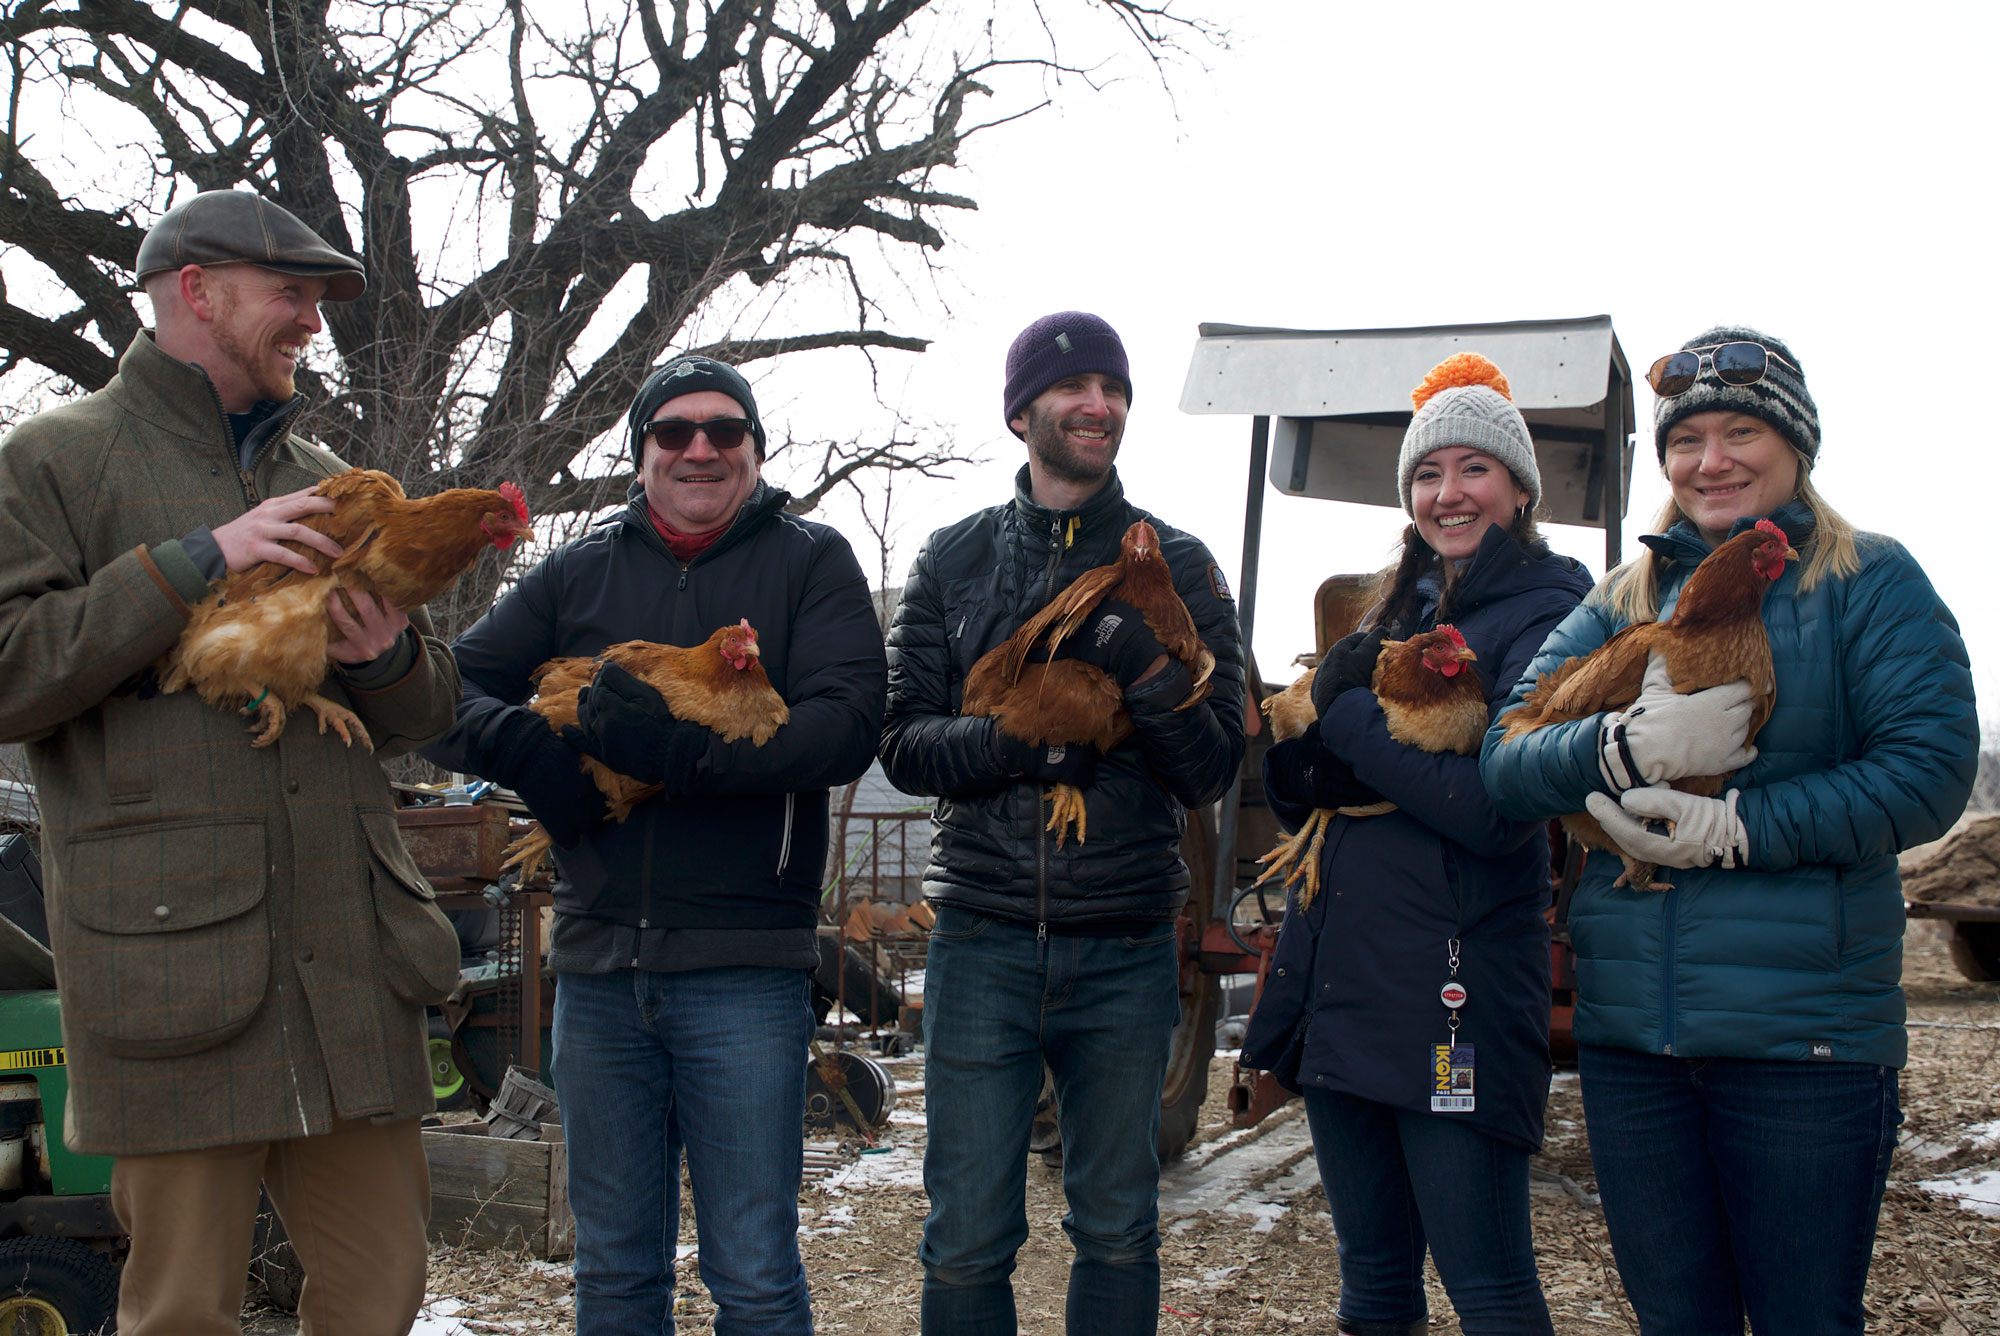 <p>Bond Pet Foods founder Rich Kelleman(center) holds the source chicken, Inga, for the line of lab-grown meat the company is testing.</p>